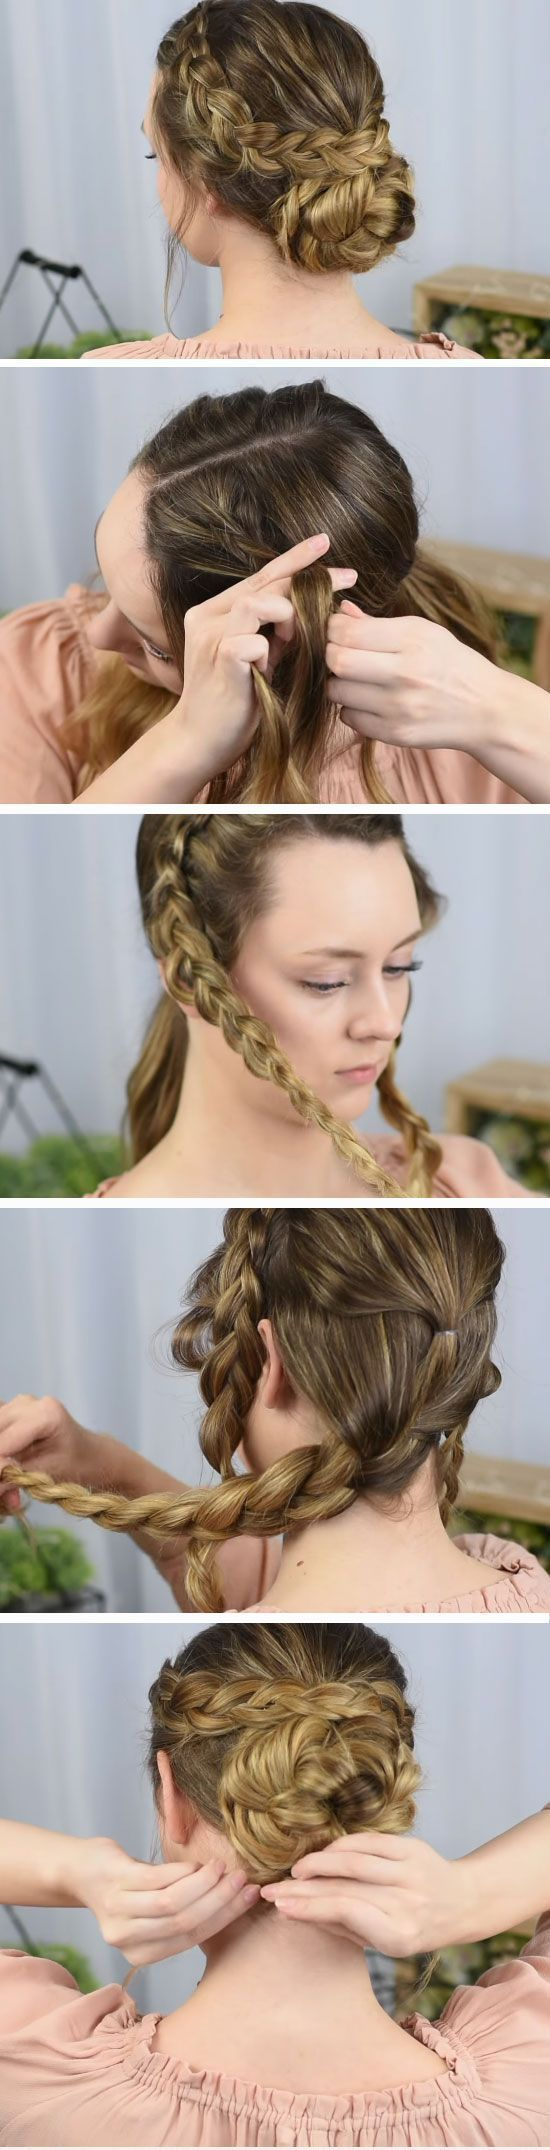 sopretty hairstyles for long hair in braided pinterest